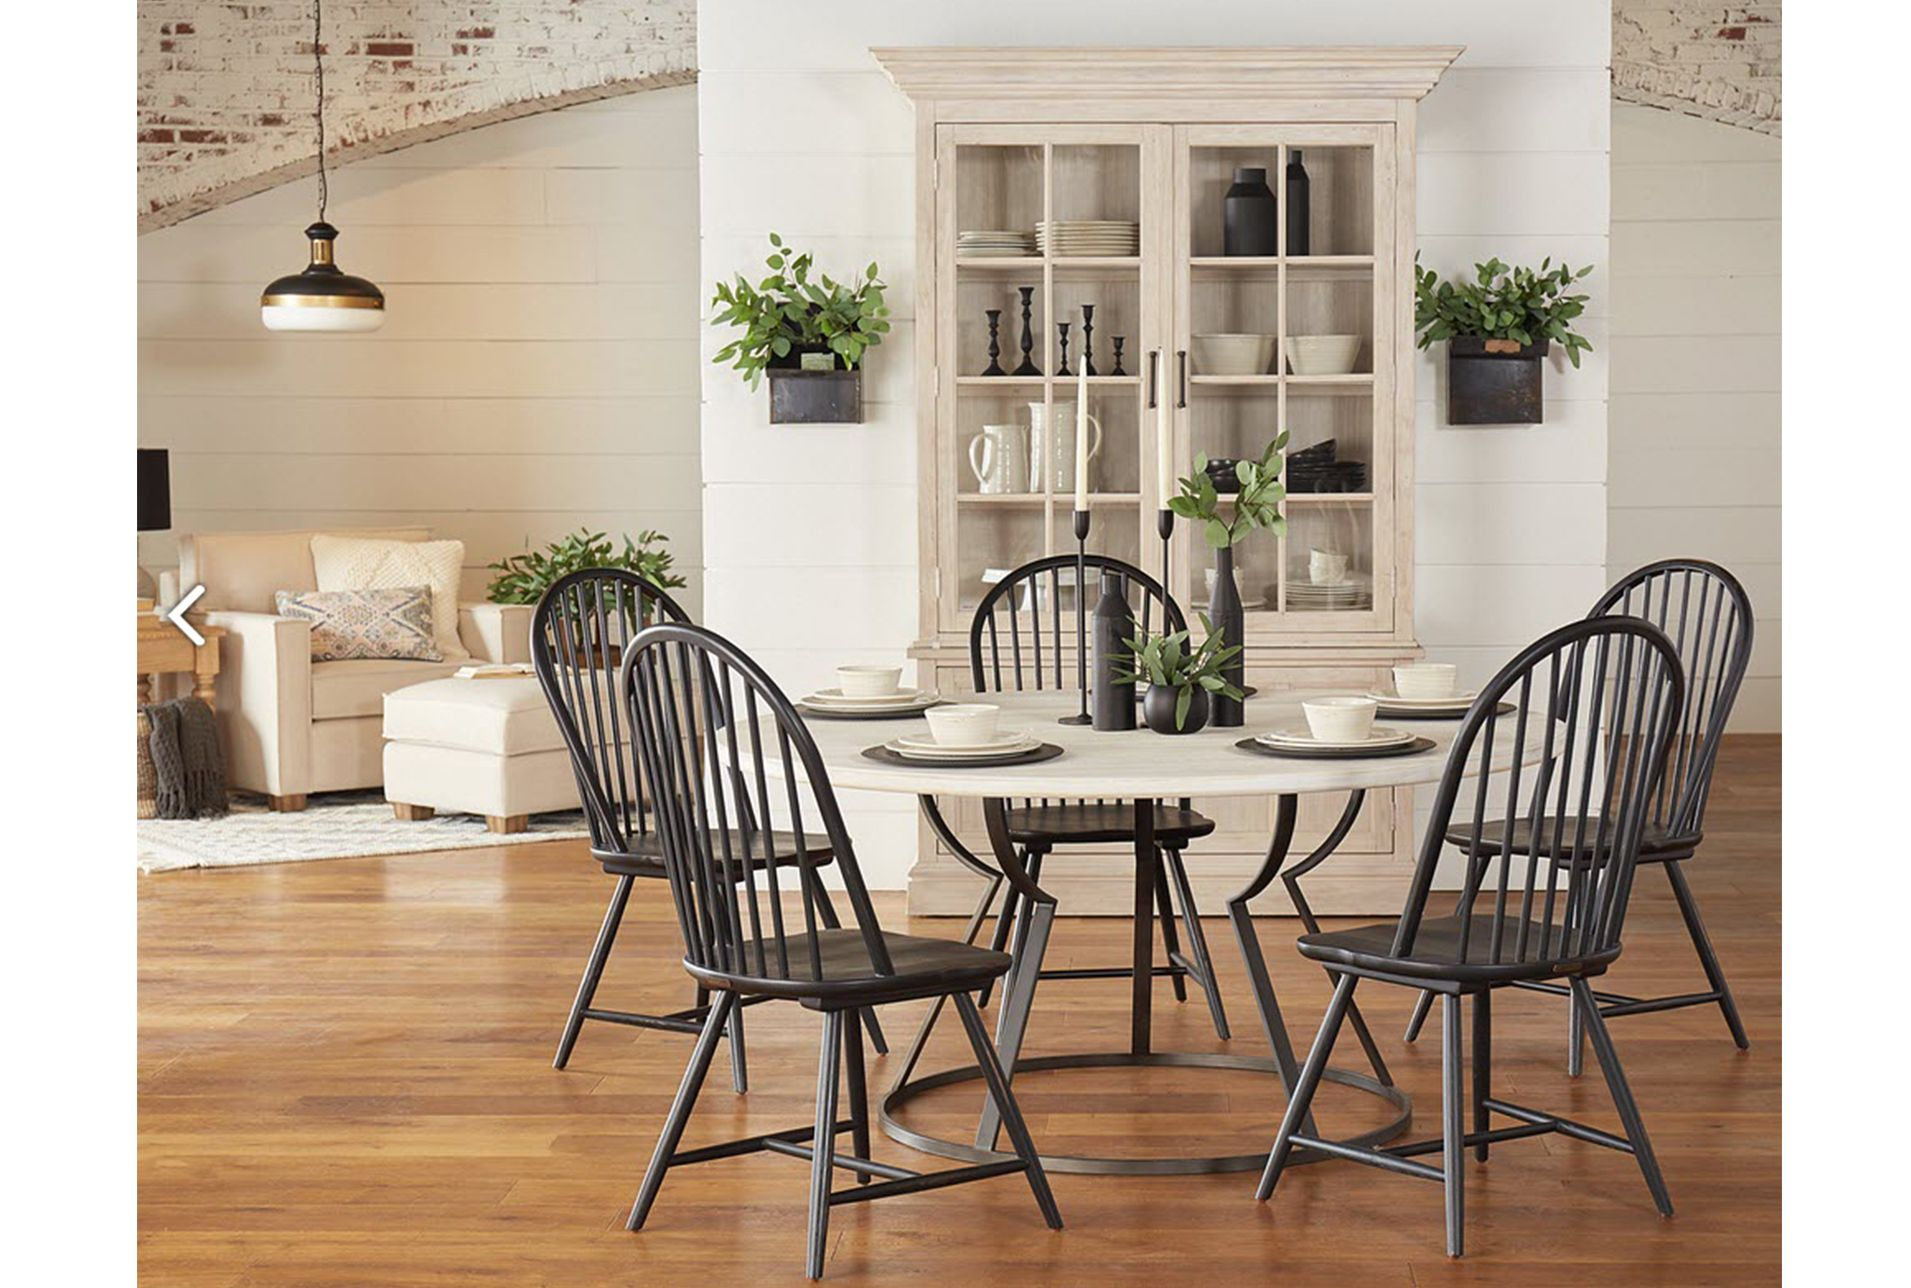 Magnolia Home Belford Dining Table By Joanna Gaines Joanna Gaines Dining Room Magnolia Homes Dining Furniture Makeover